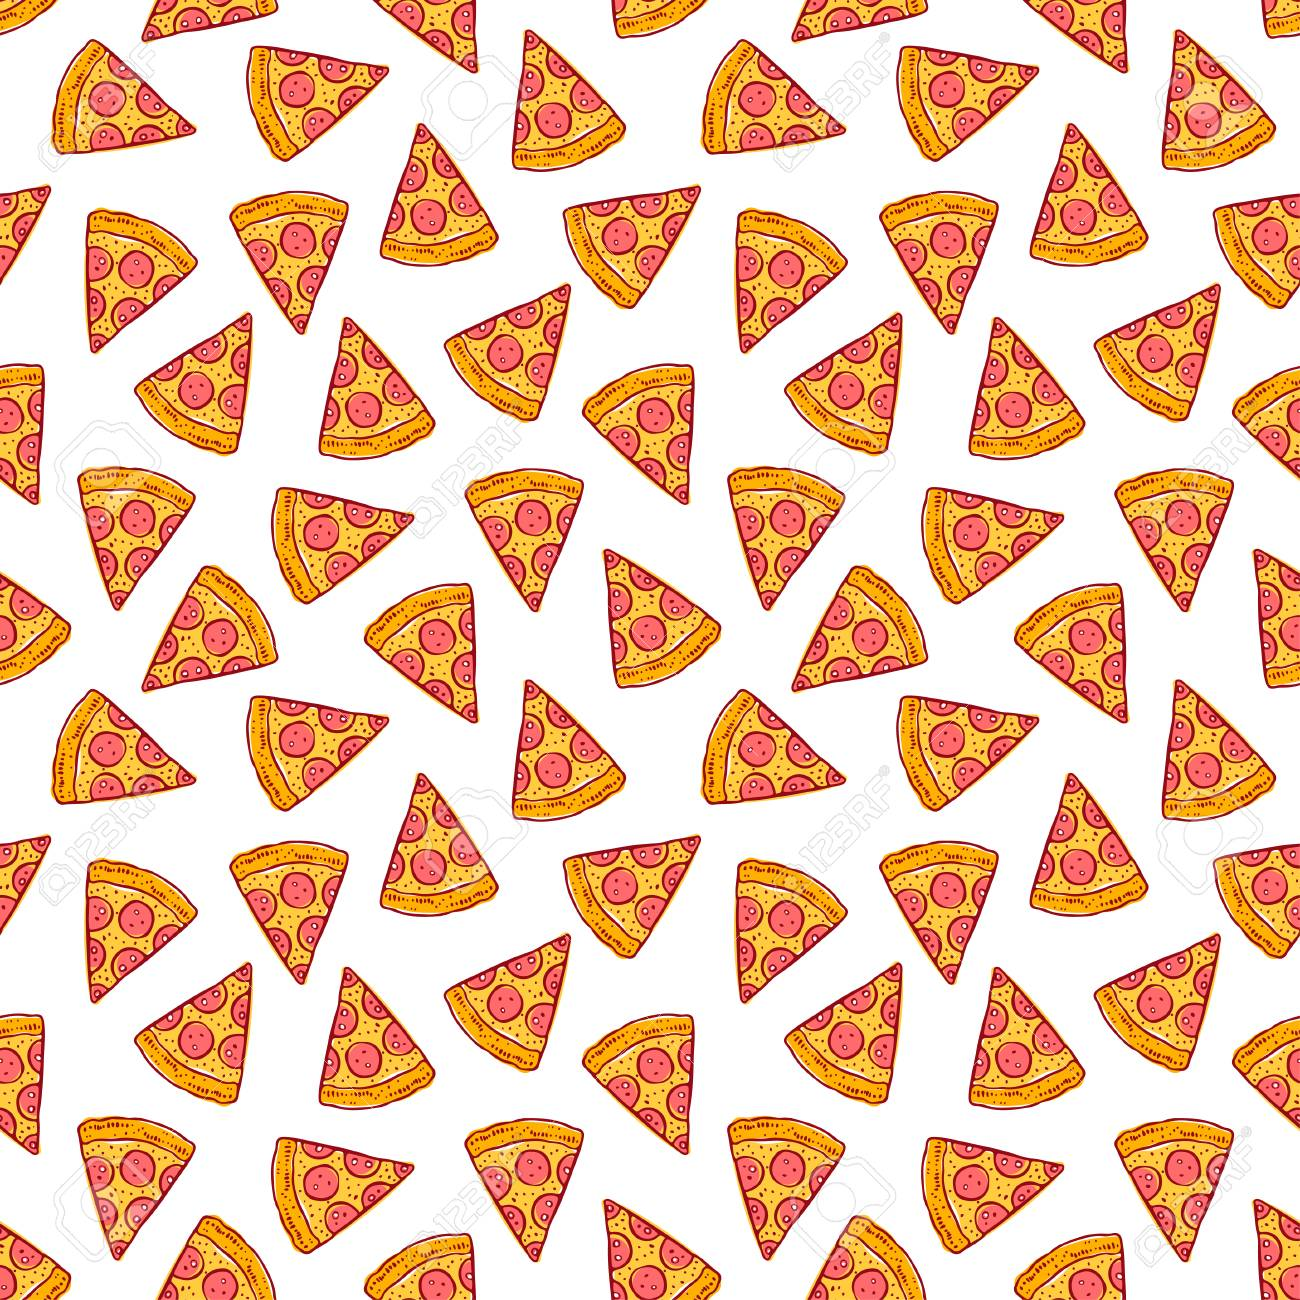 Cute seamless background of delicious pizza slices. hand-drawn illustration - 86203781